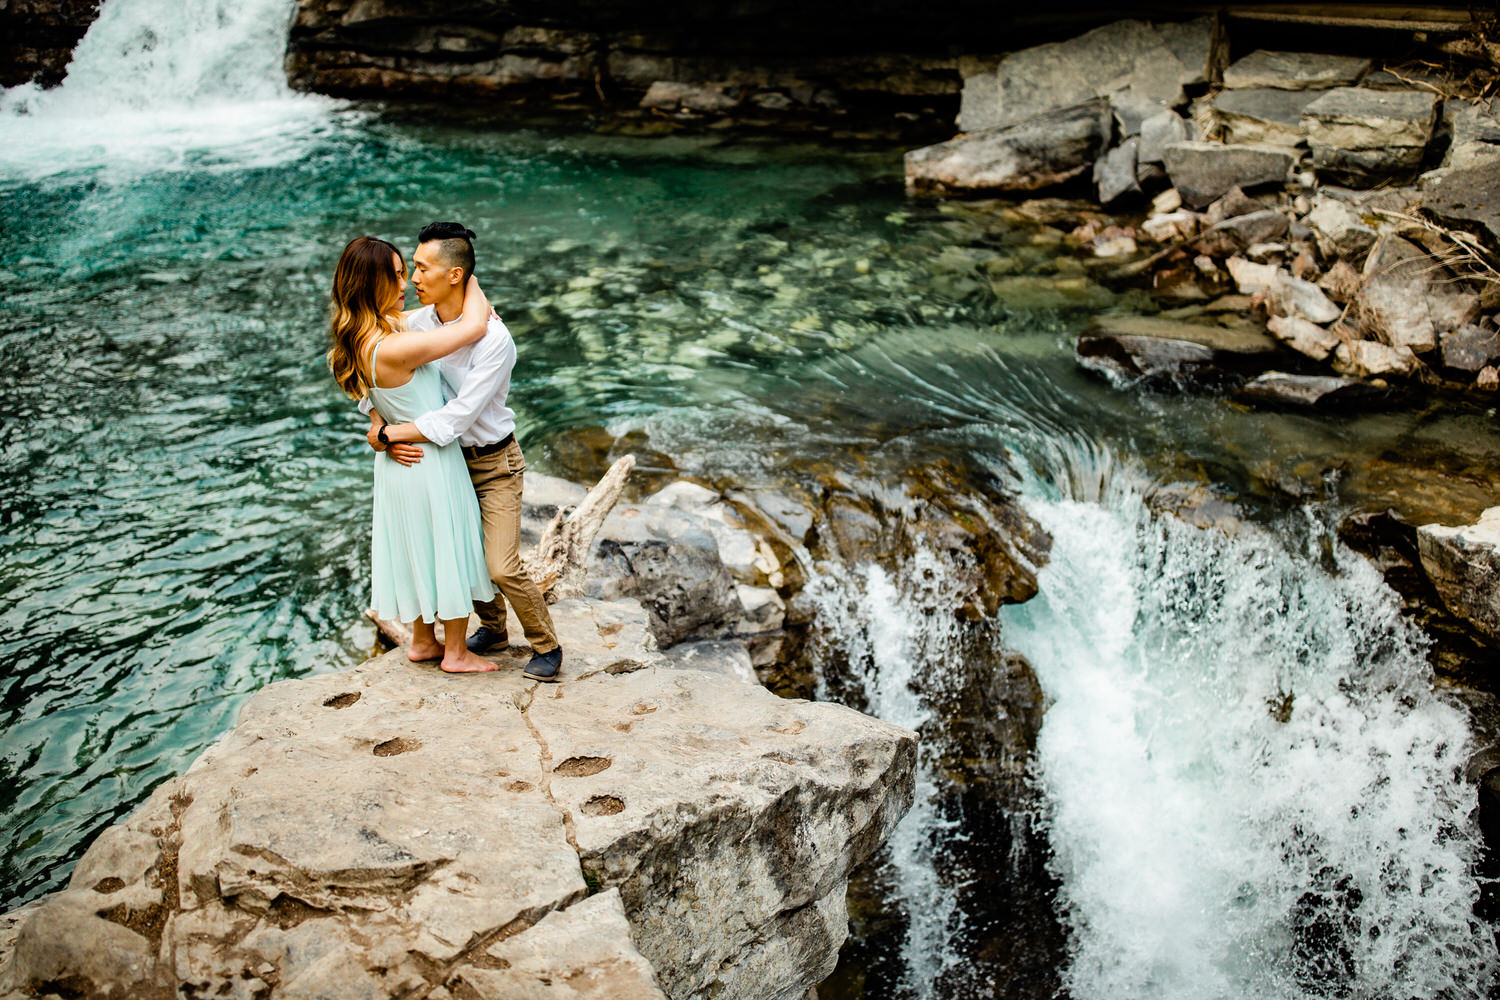 Water flowing in Johnston Canyon during an engagement shoot in Banff National Park